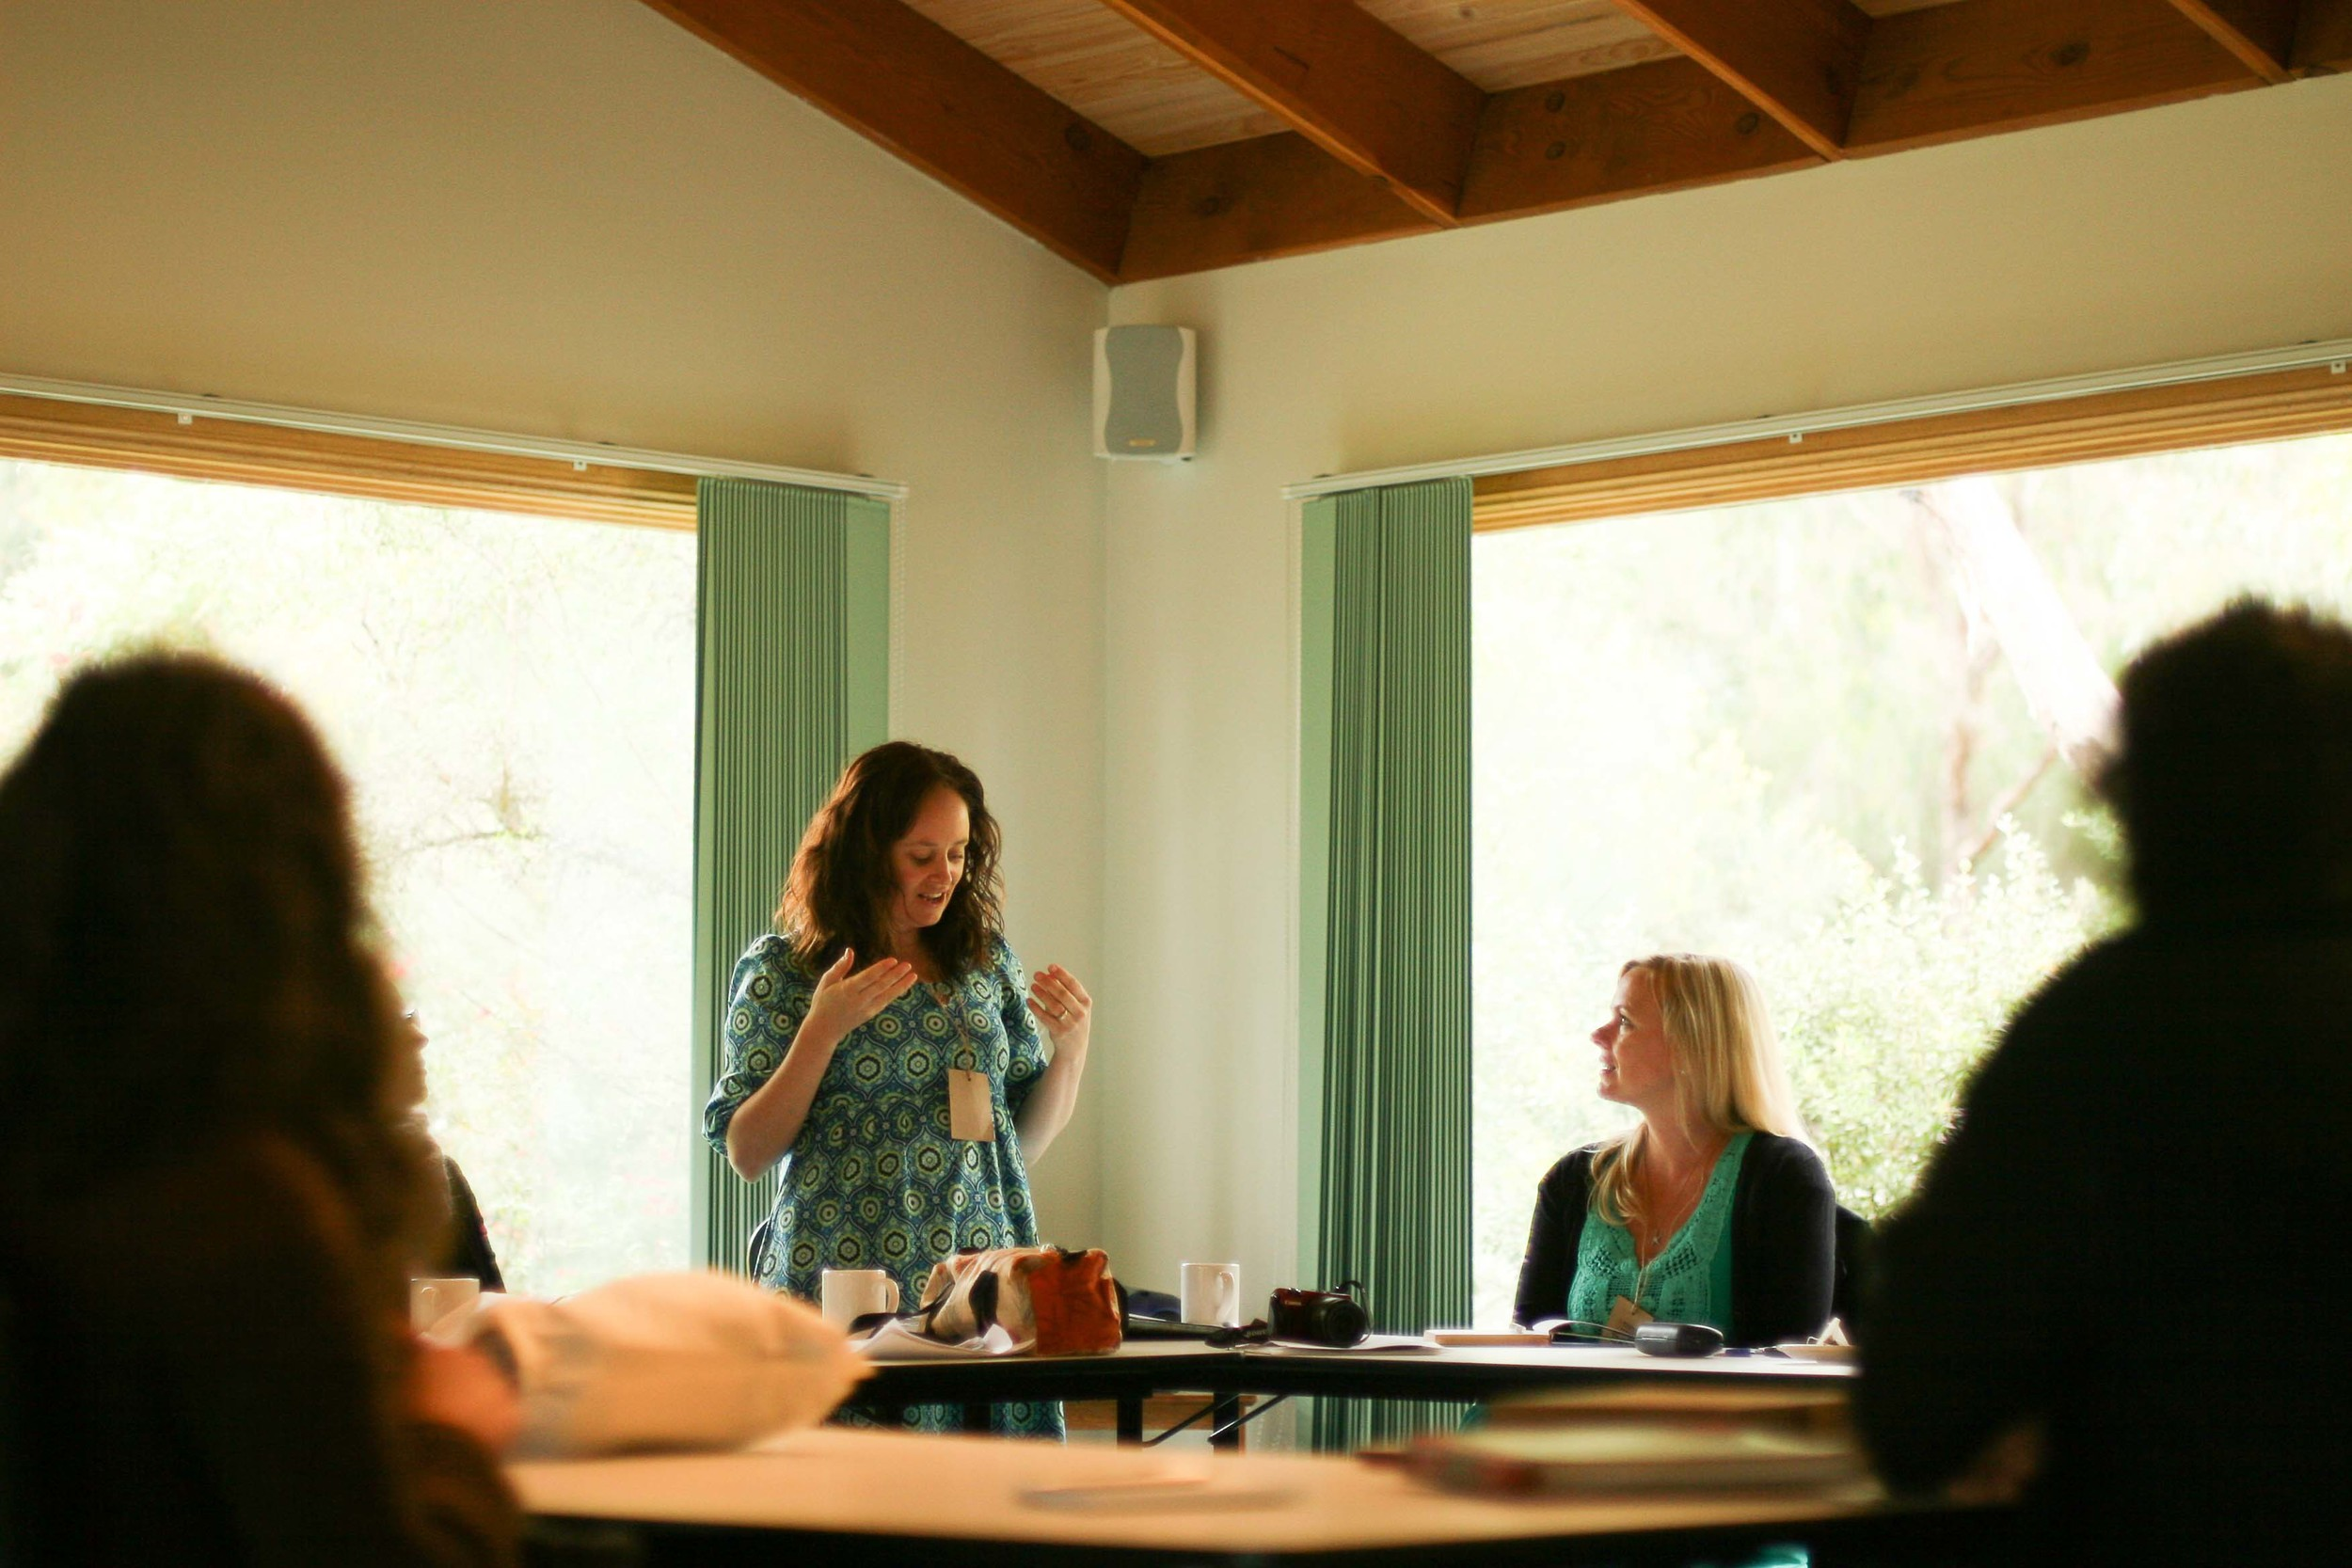 Georgie Hallam teaching Intro to Design. Photo by Felicia Semple